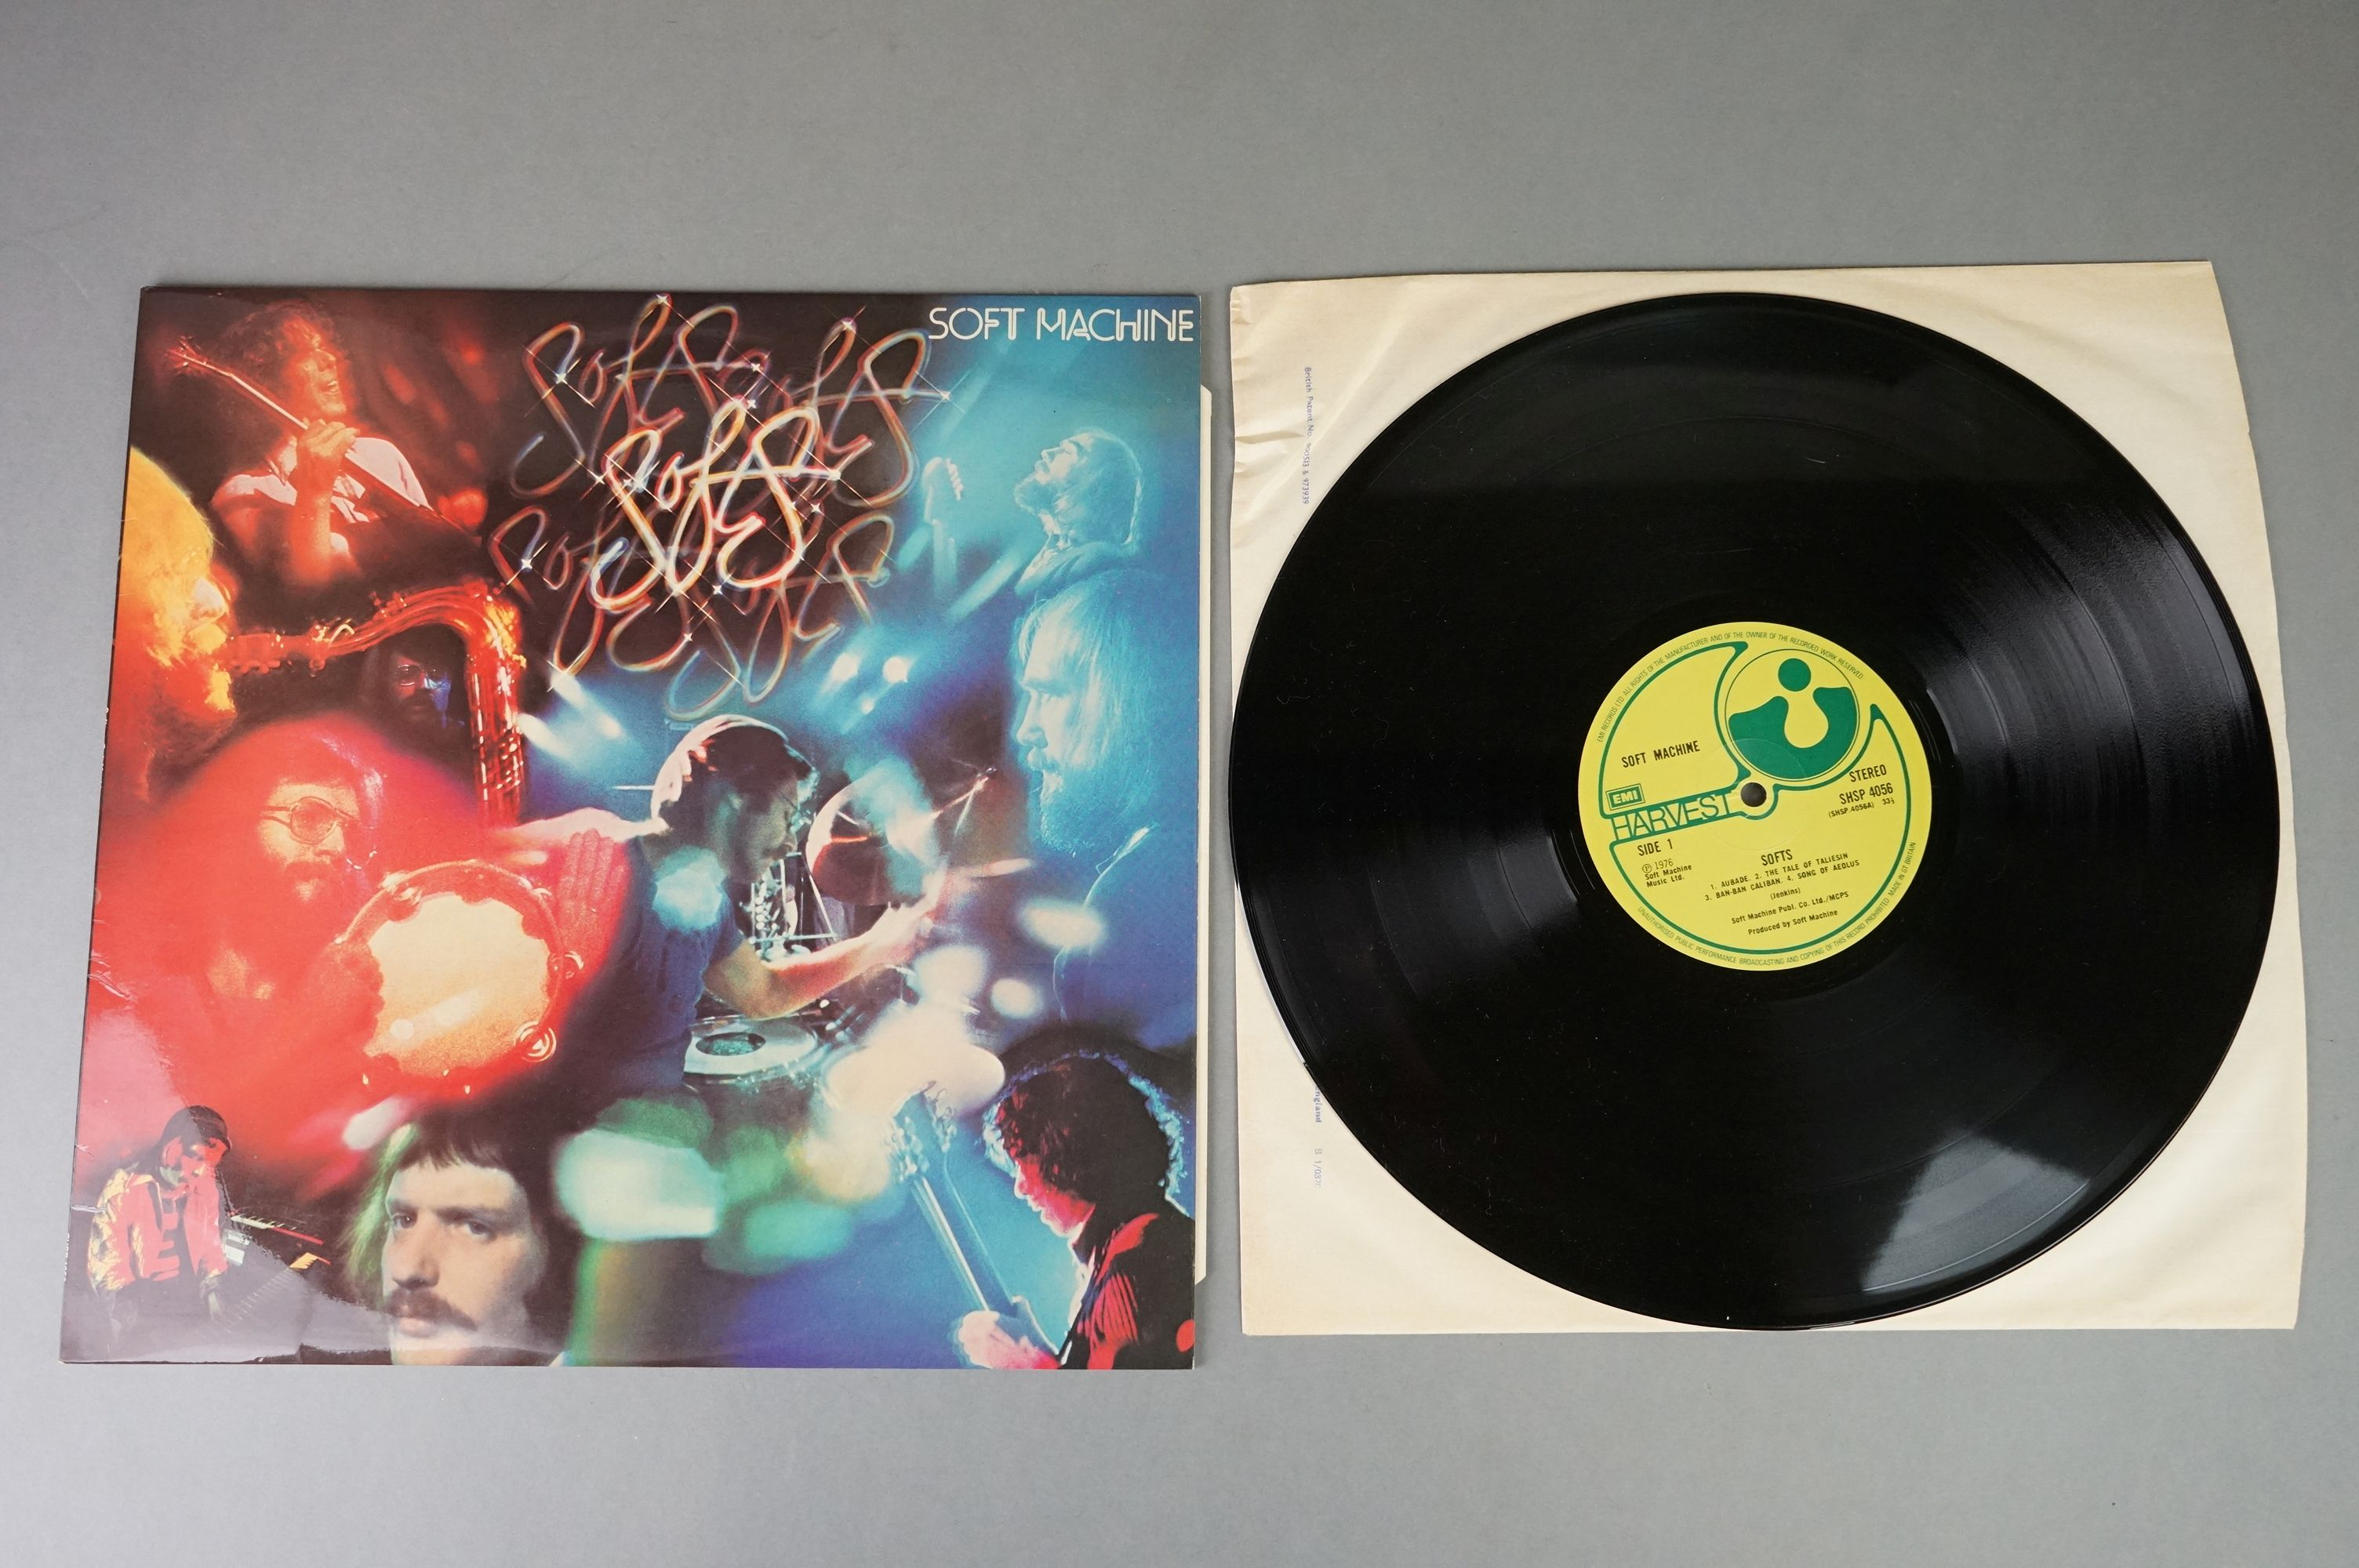 Vinyl - Two Soft Machine vinyl LP's to include Softs (EMI Records SHSP 4056), Volume Two (Probe - Image 6 of 9